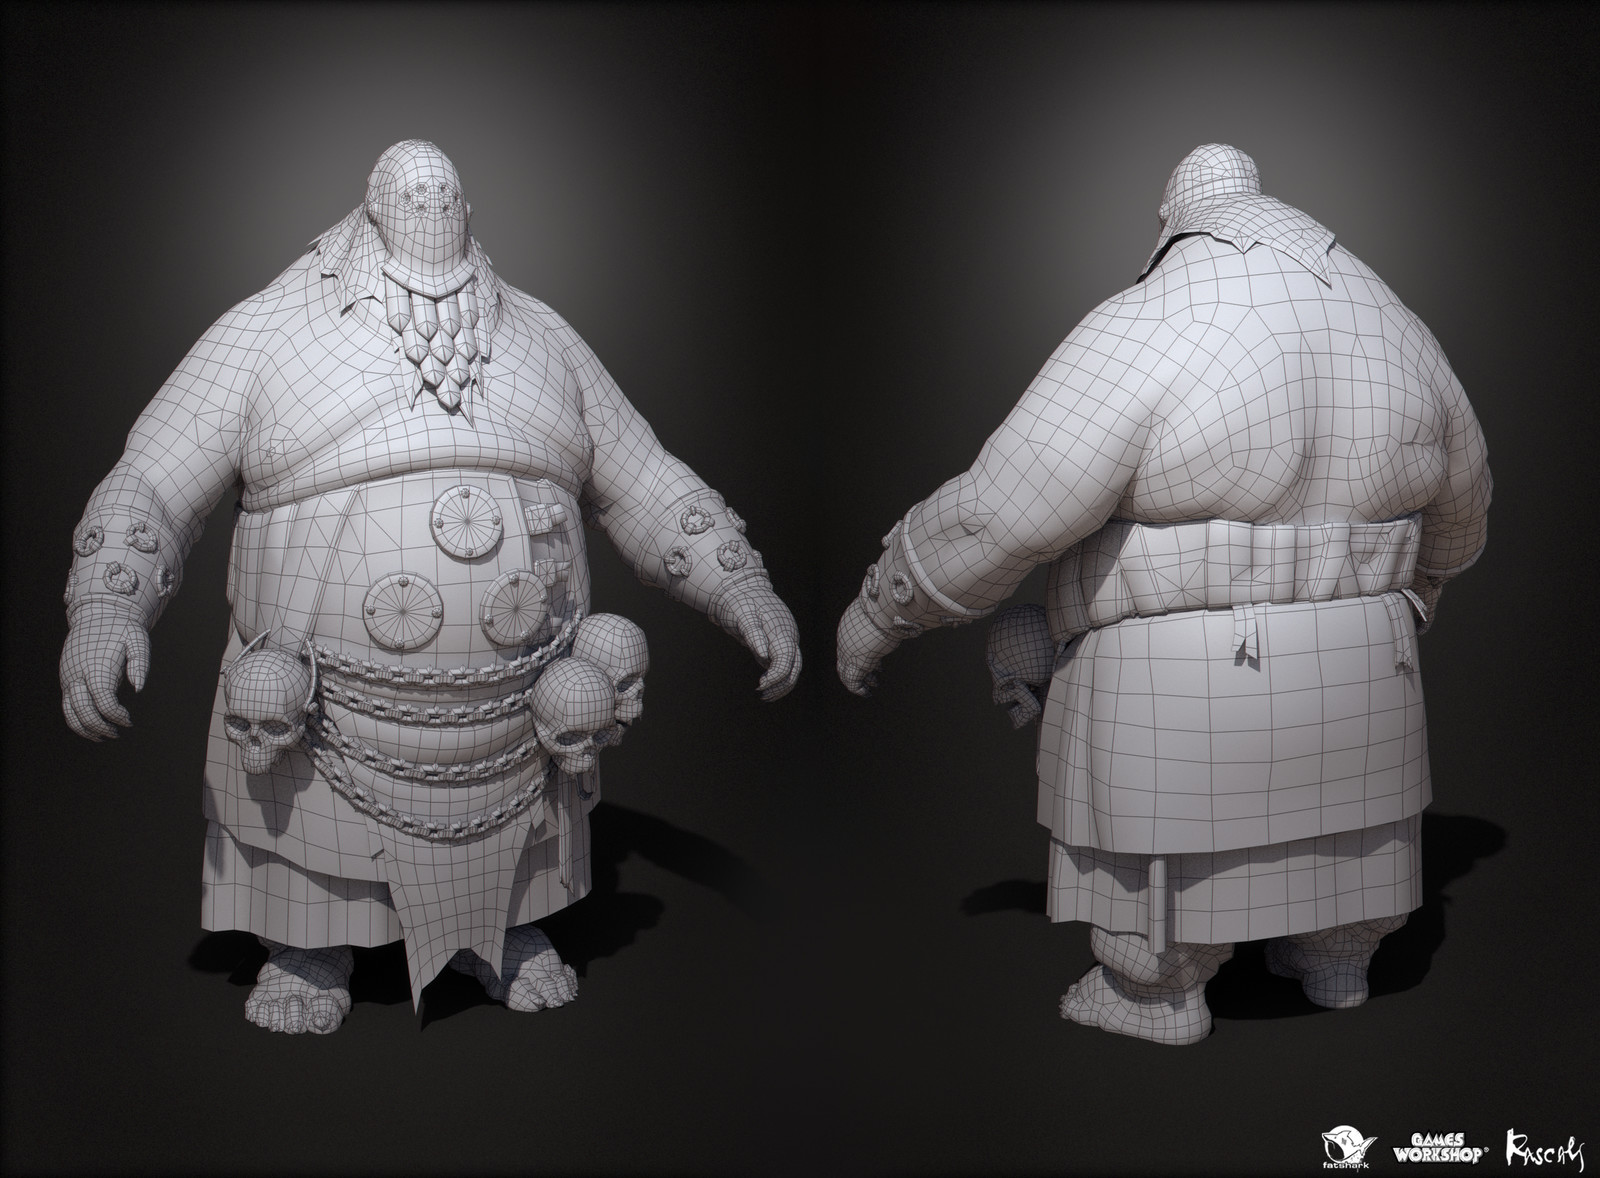 The final model has 21K polys and uses 4K PBR textures